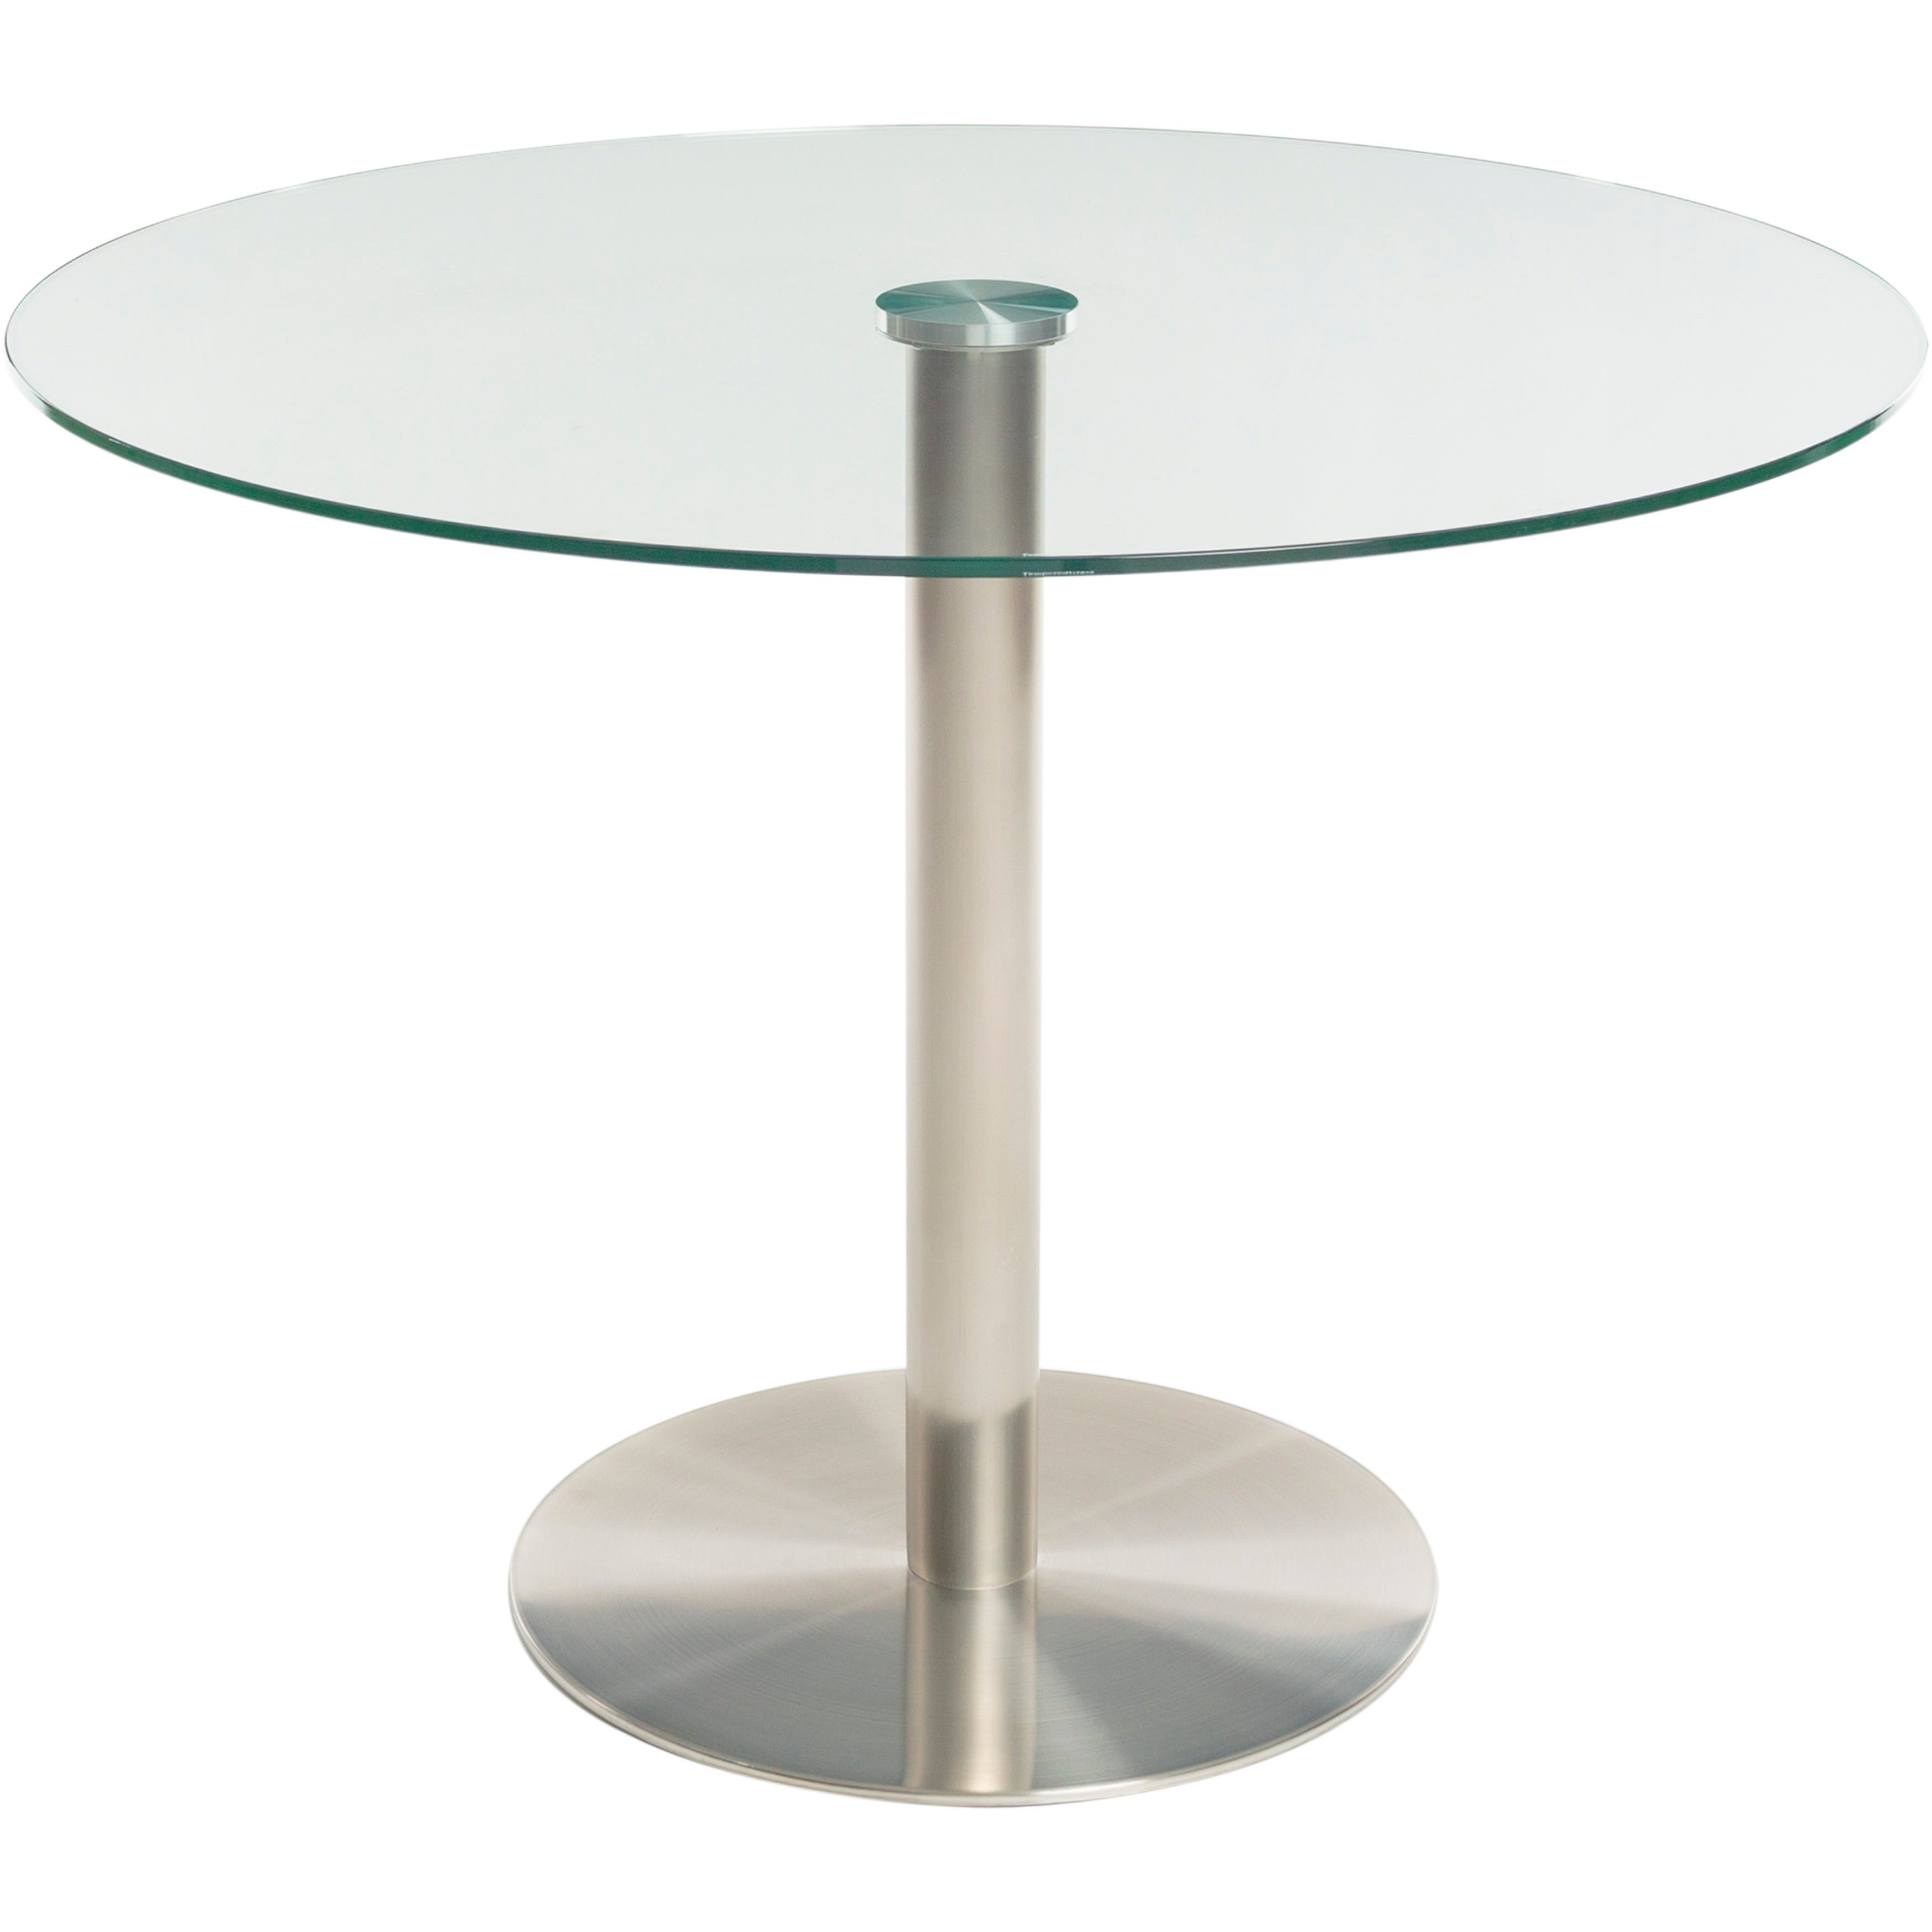 MIX Brushed Stainless Steel Round Glass Dining Table And Memory Swivel  Chairs 5 Piece Set   Free Shipping Today   Overstock.com   18001321